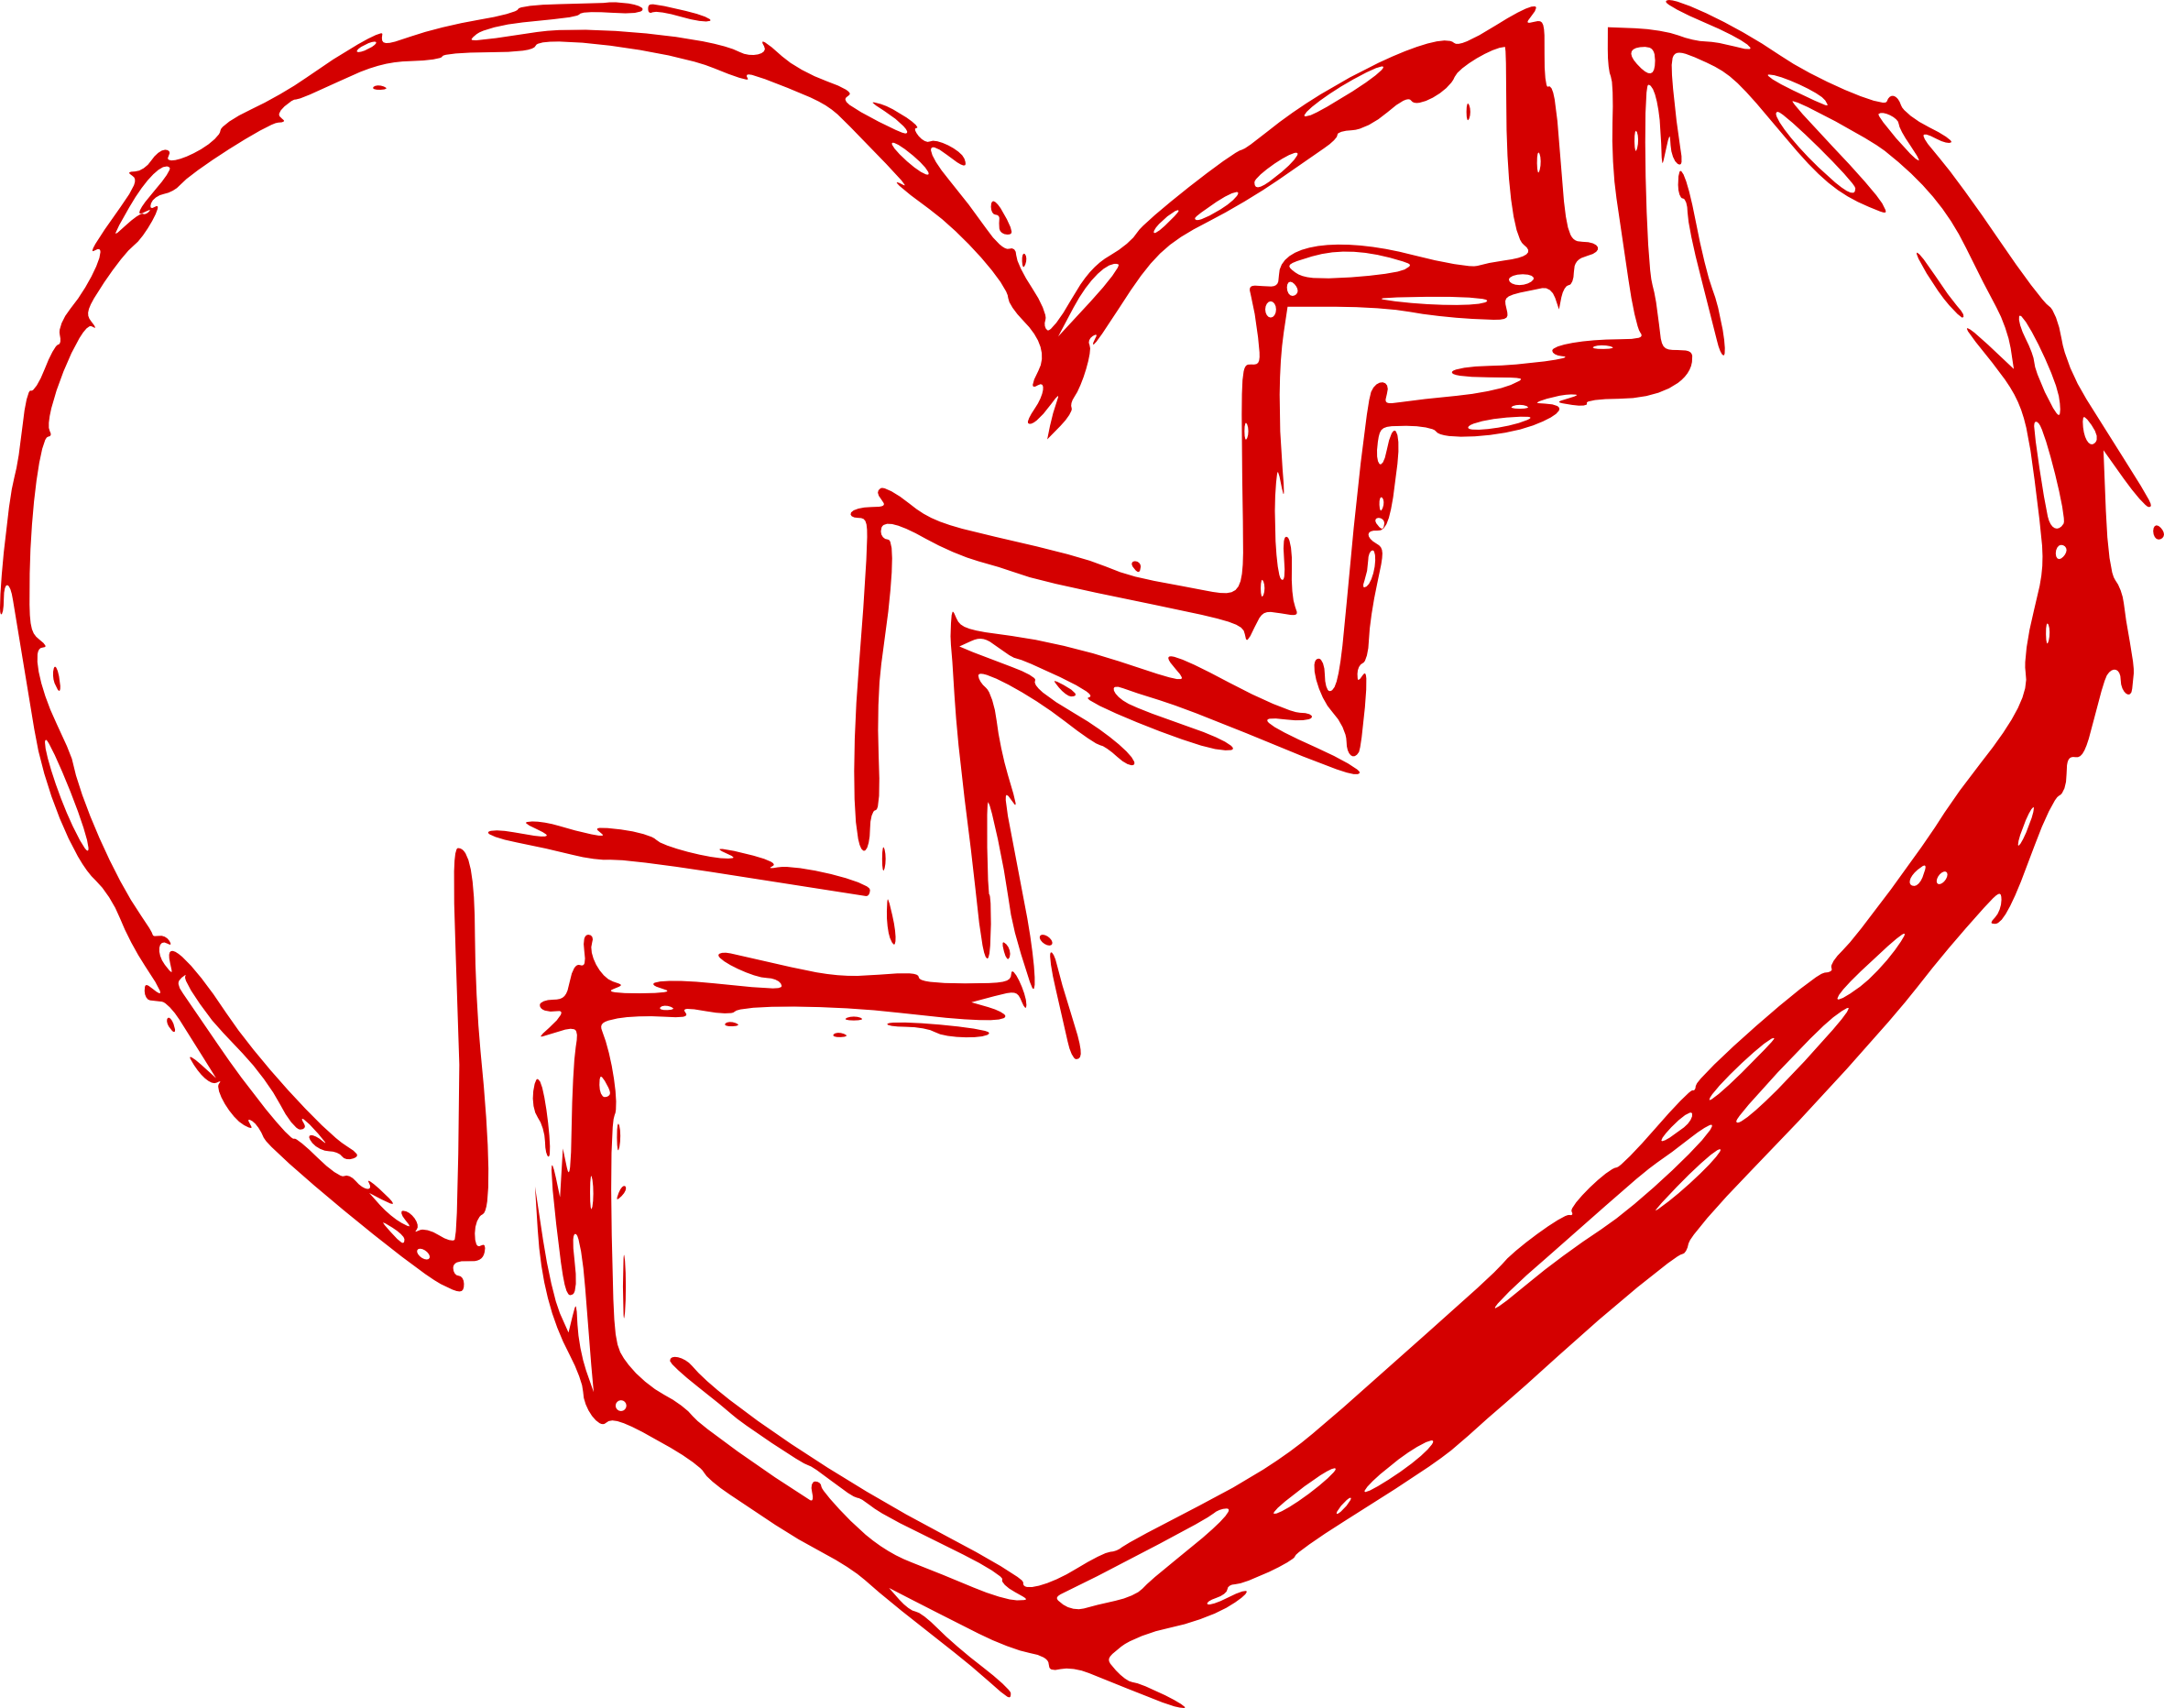 graphic transparent download Designs png free icons. Drawing sad broken heart